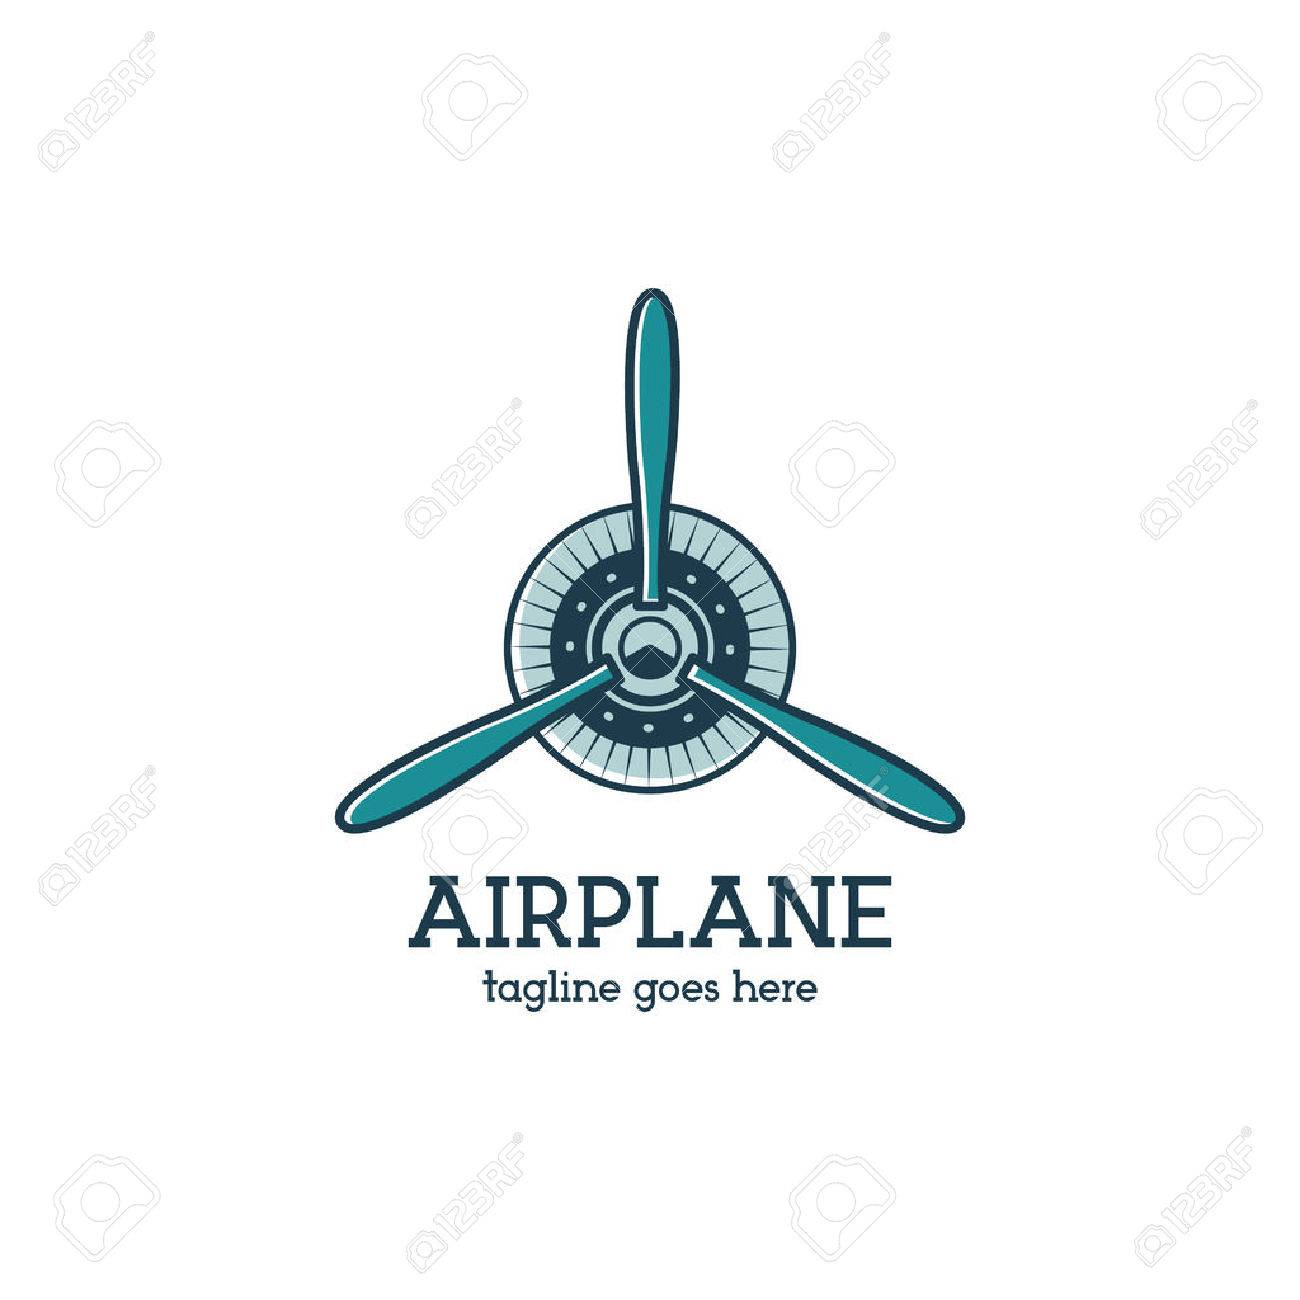 92cec64a56ce Airplane propeller logo template with radial engine. Retro Plane badge.  Flat design for prints